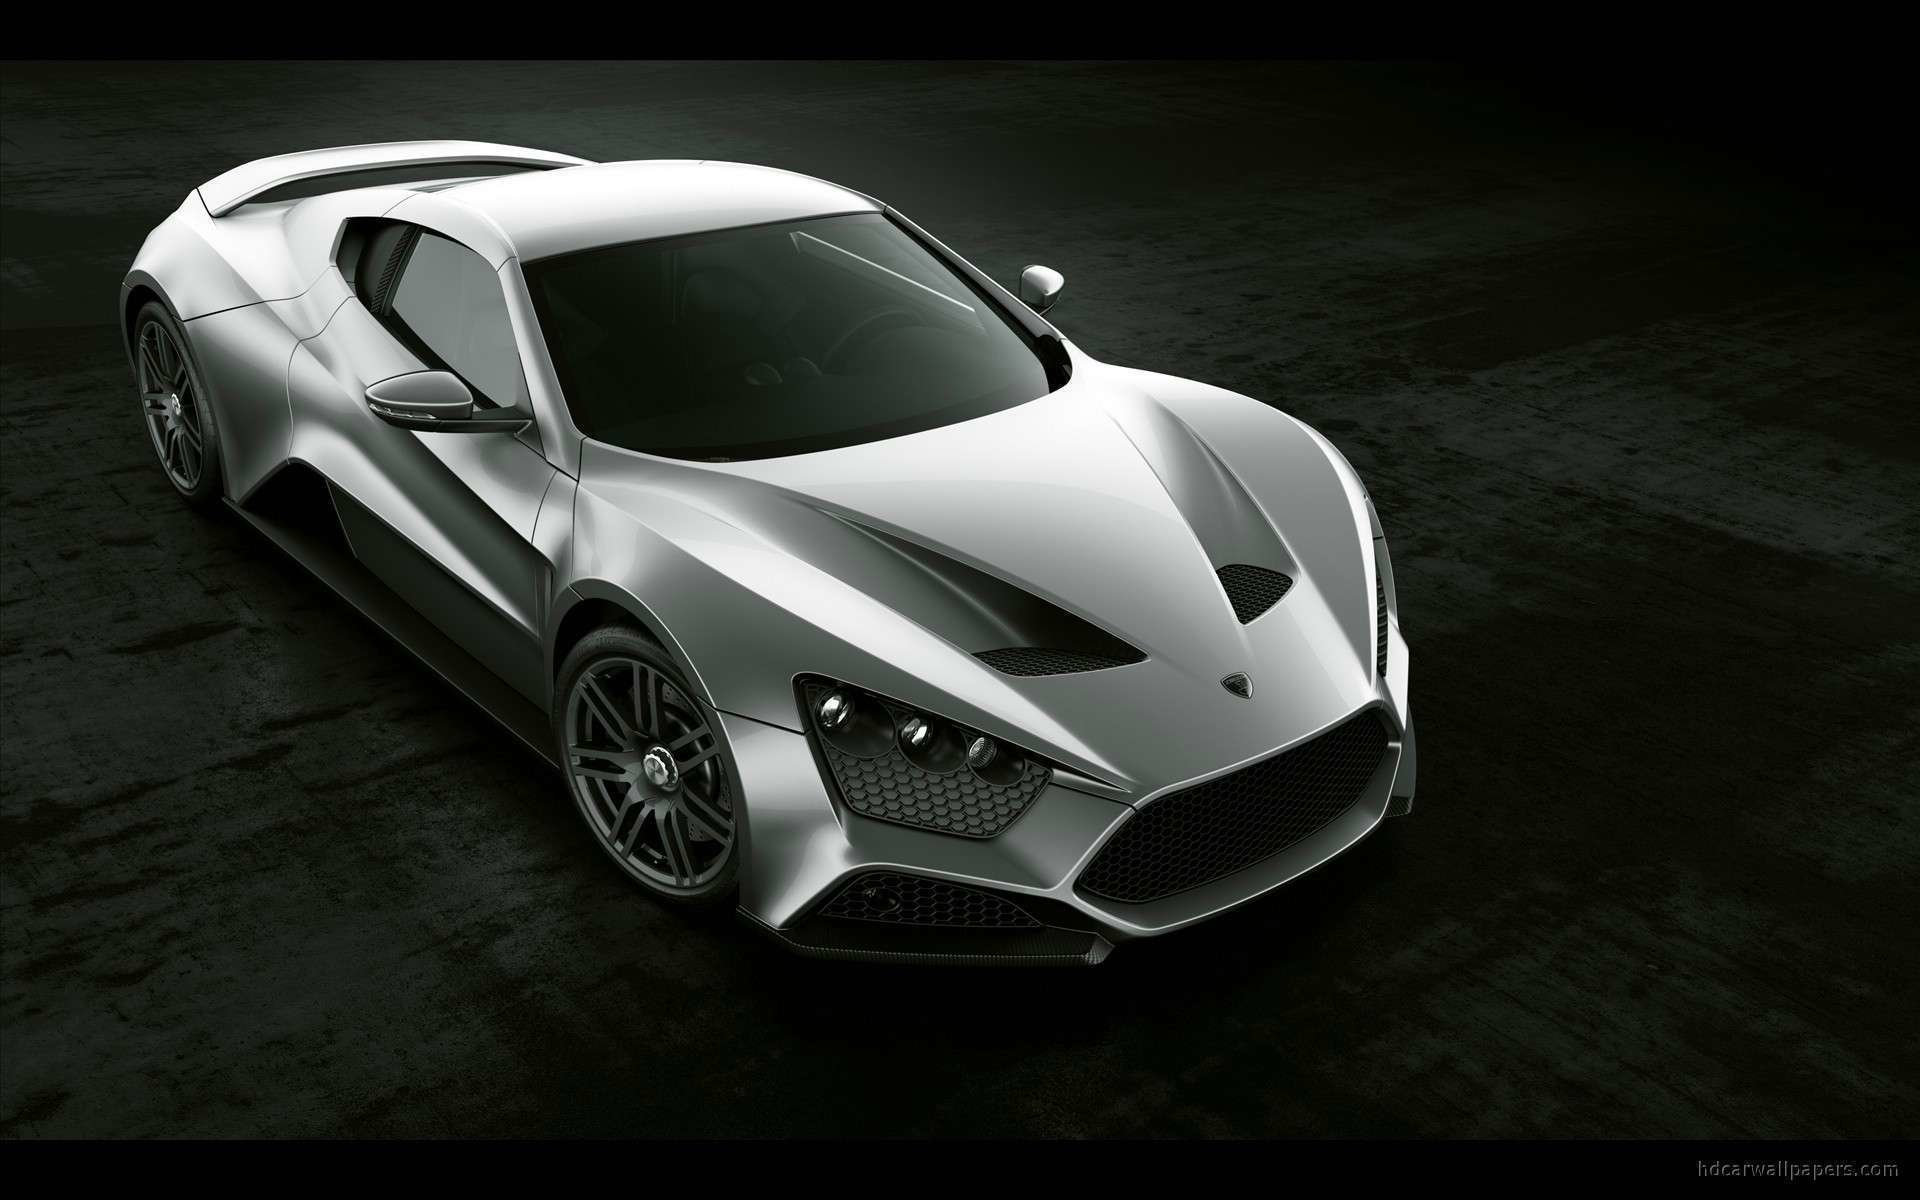 New Zenvo Devon 6 Hd Wallpapers Hd Car Wallpapers On This Month